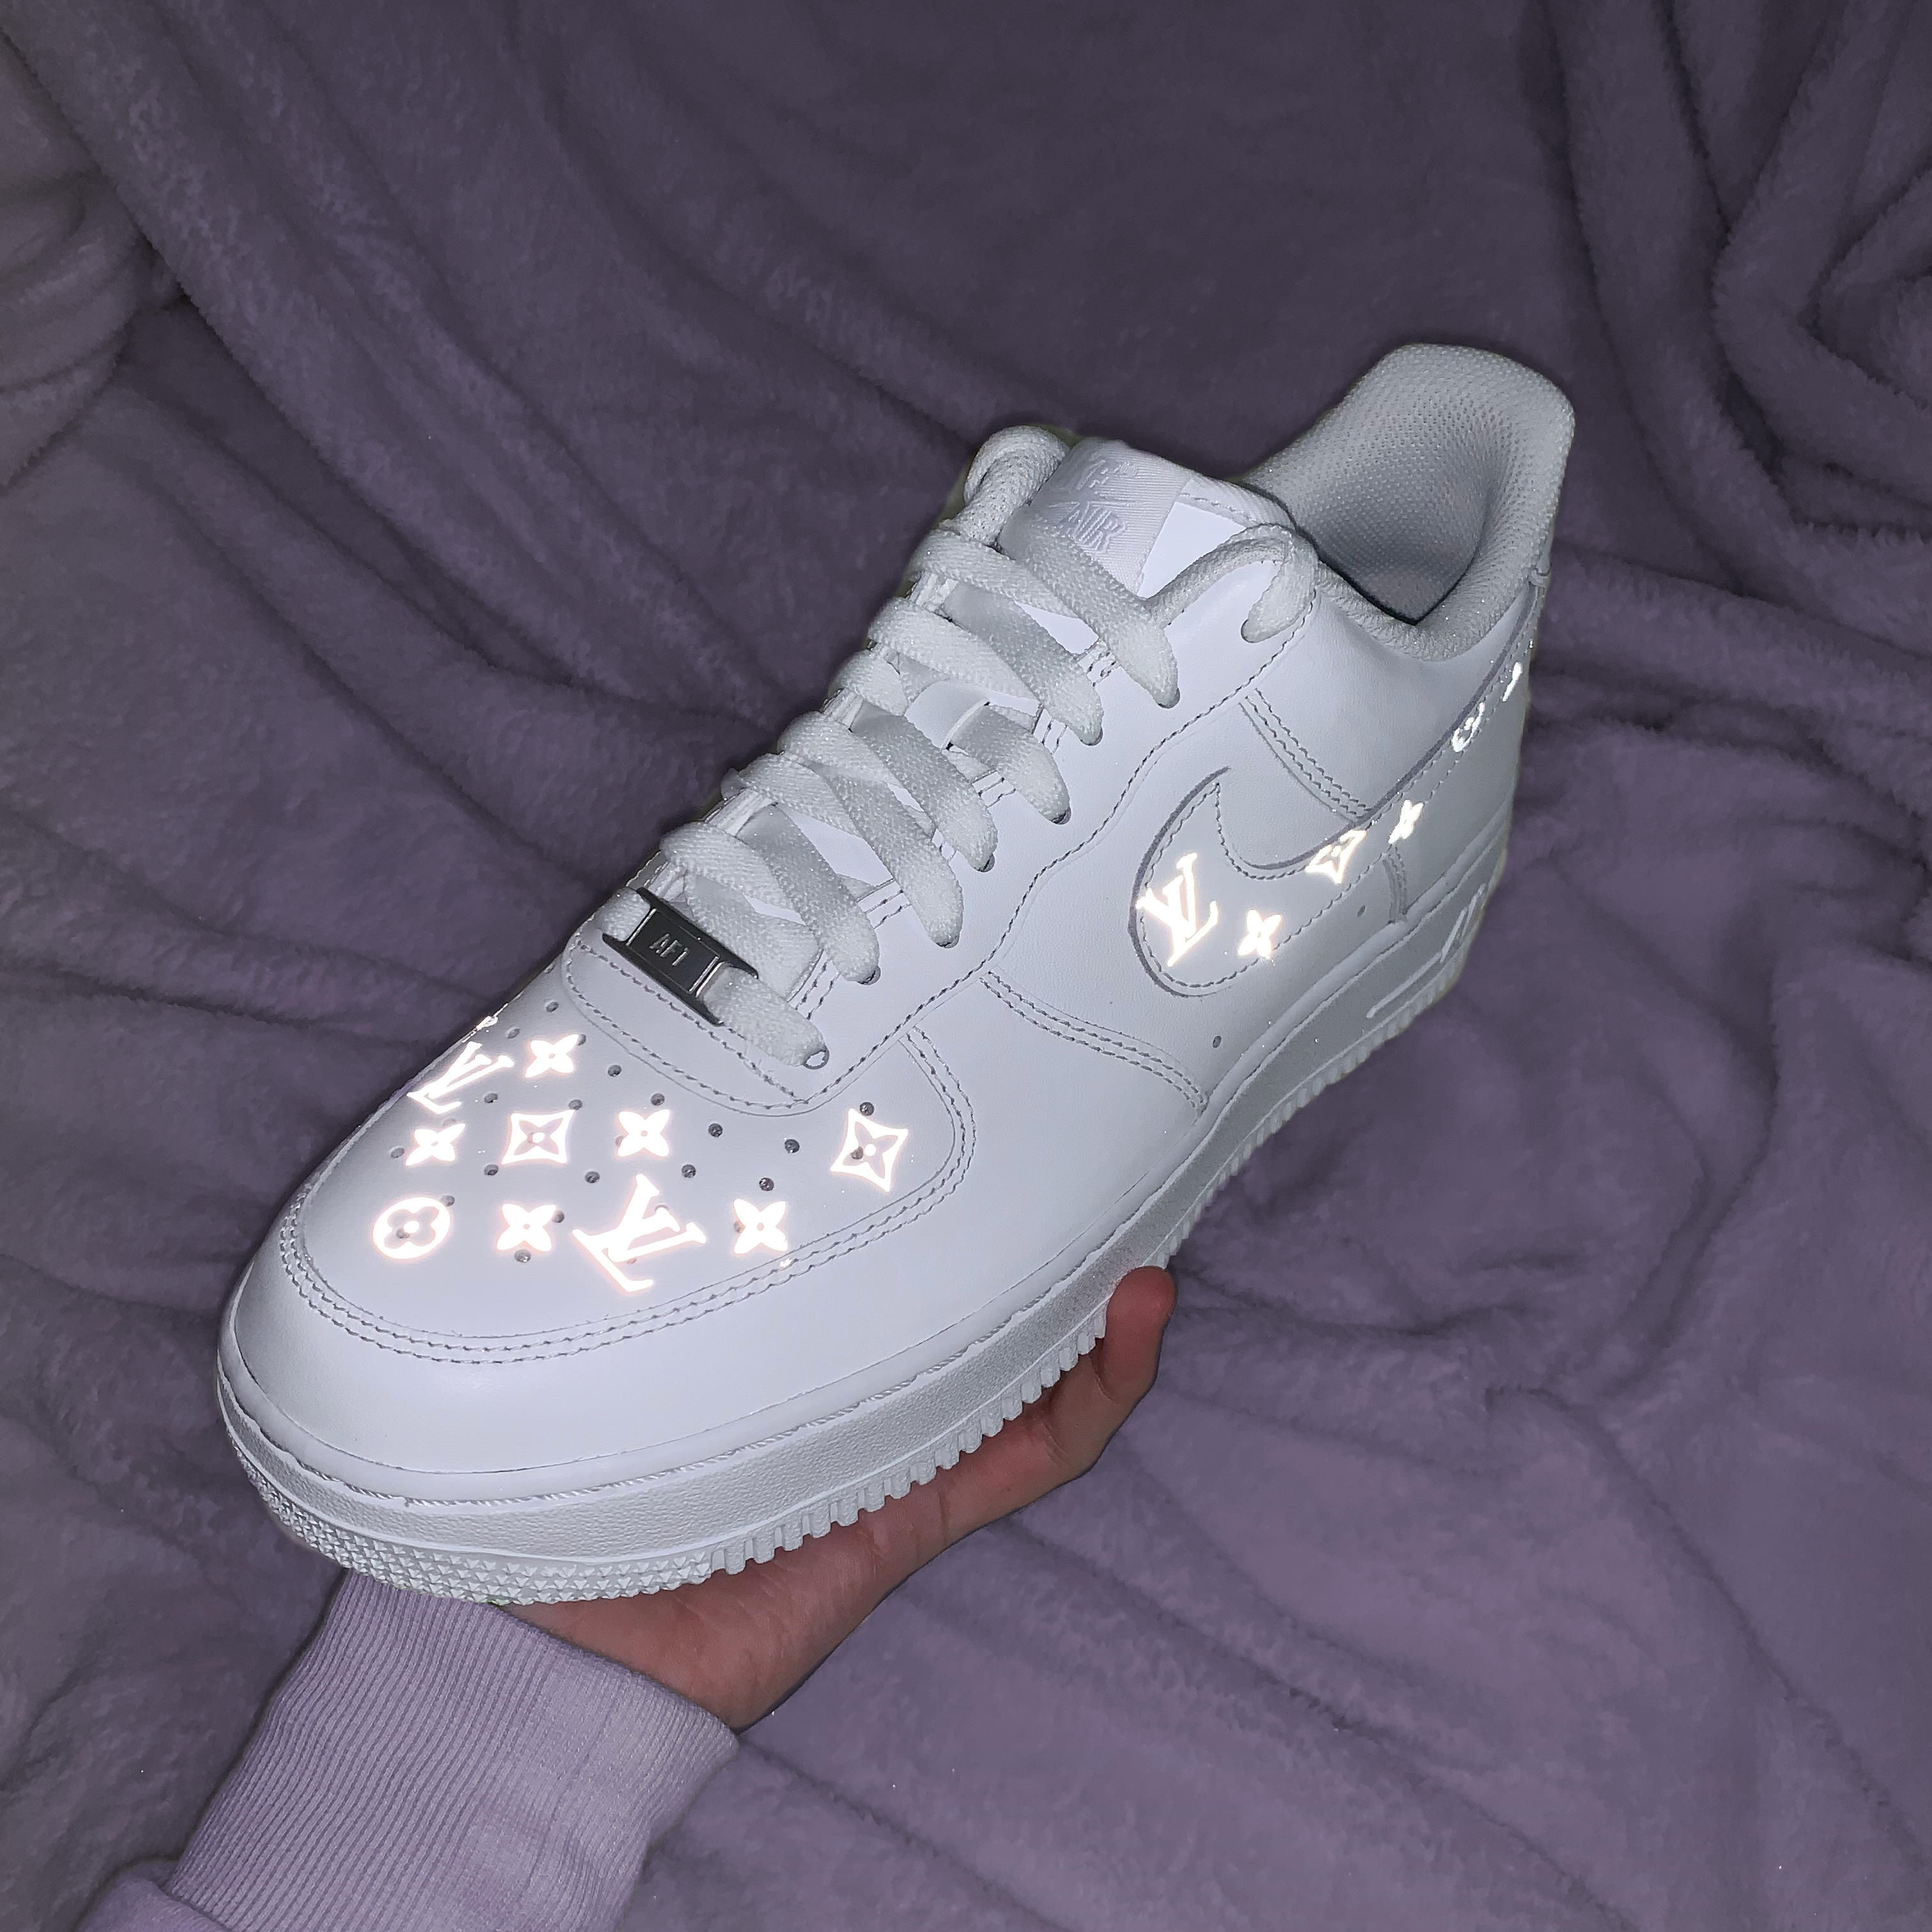 Reflective Louis Vuitton Pattern Nike Air Force 1 The Custom